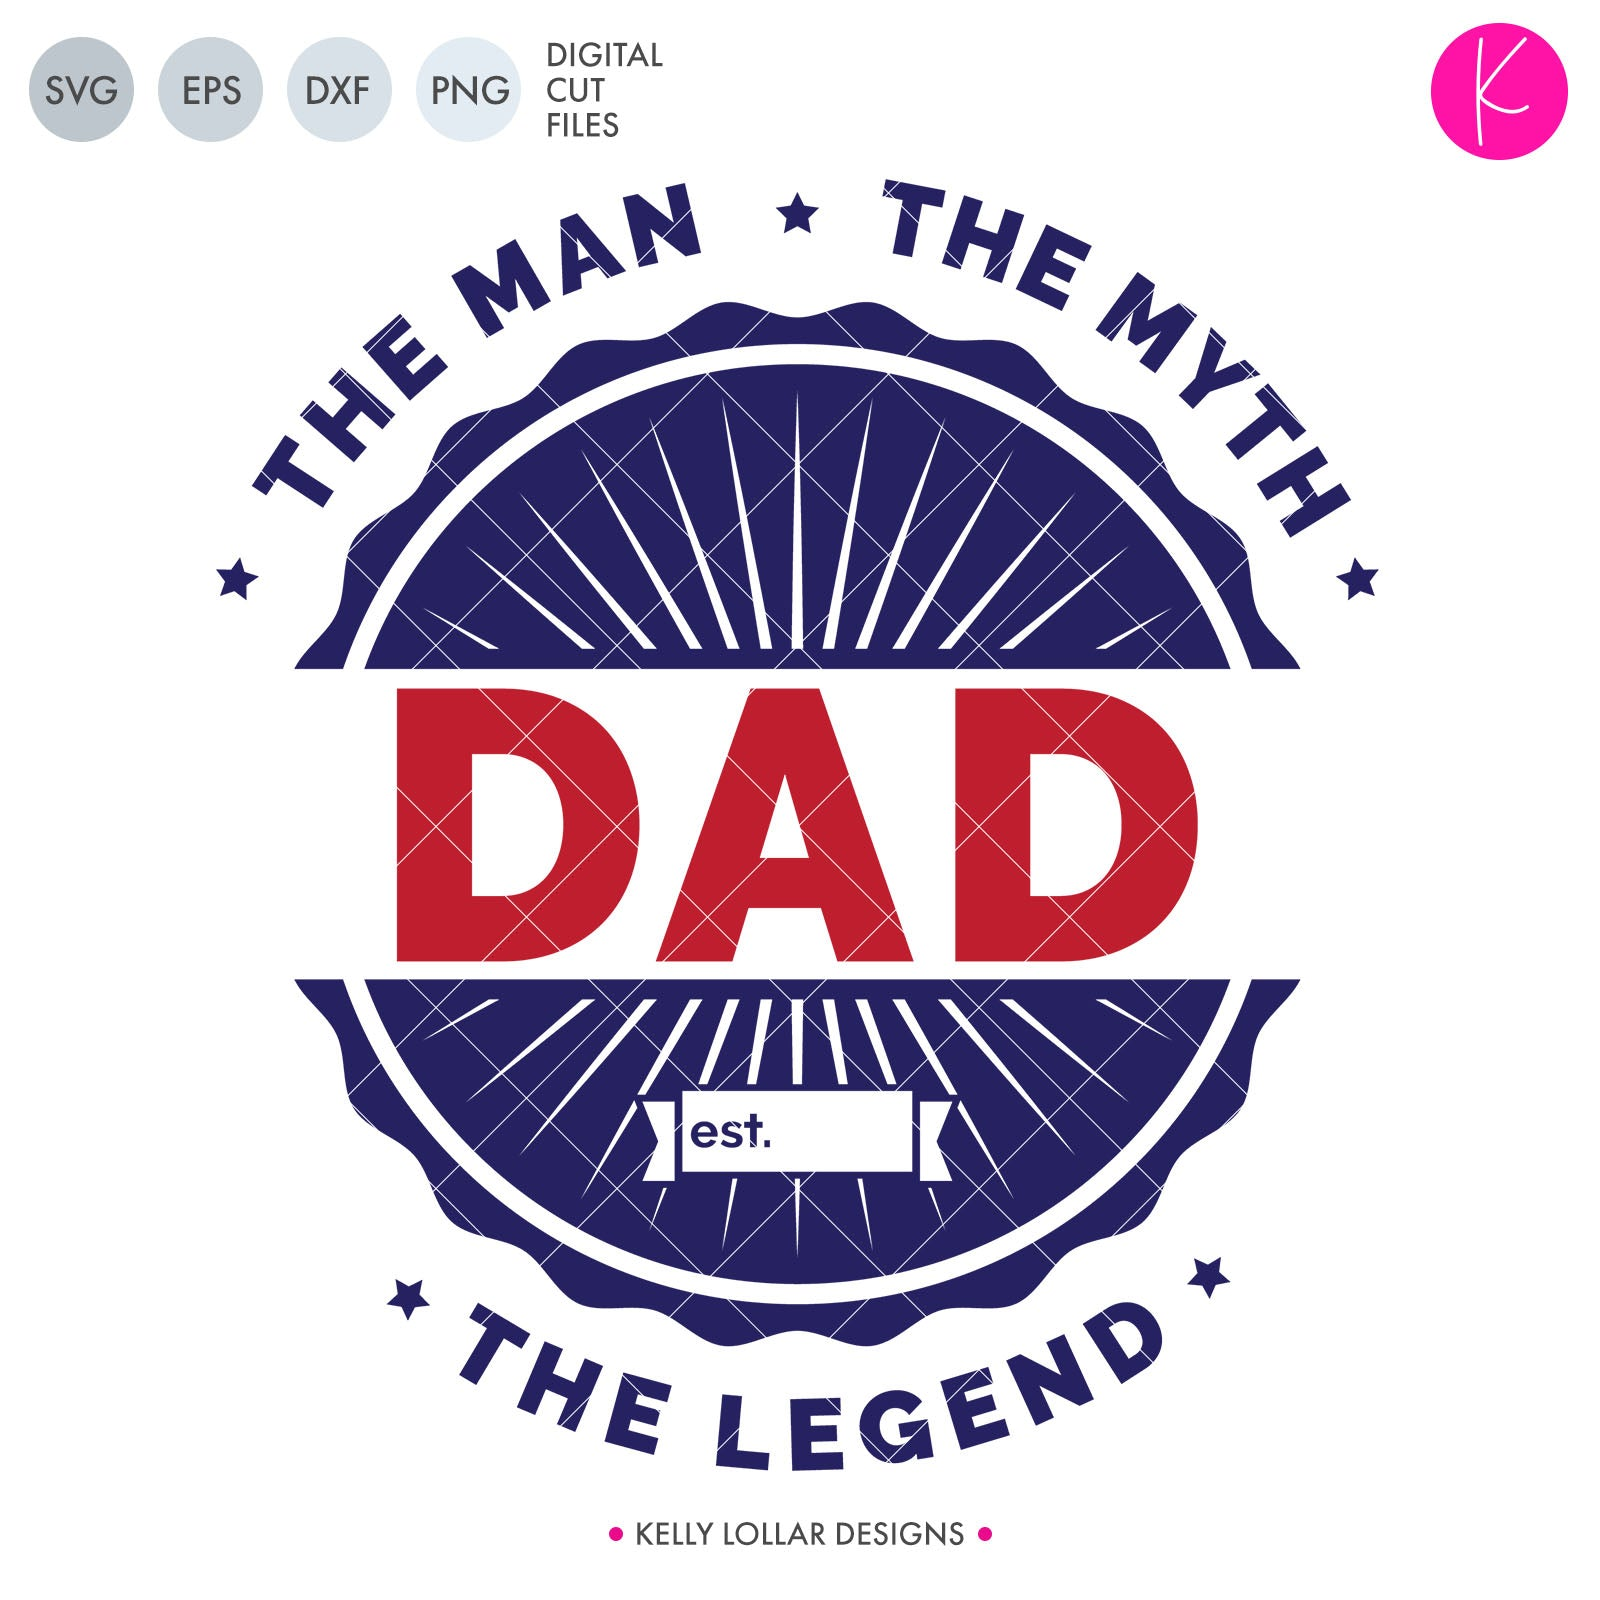 The Man The Myth The Legend Dad | SVG DXF EPS PNG Cut Files Father's Day Badge Design for Dad with Spot for Est. Year | SVG DXF PNG Cut Files He's the man and you'd love to show him. This Father's Day, make dad